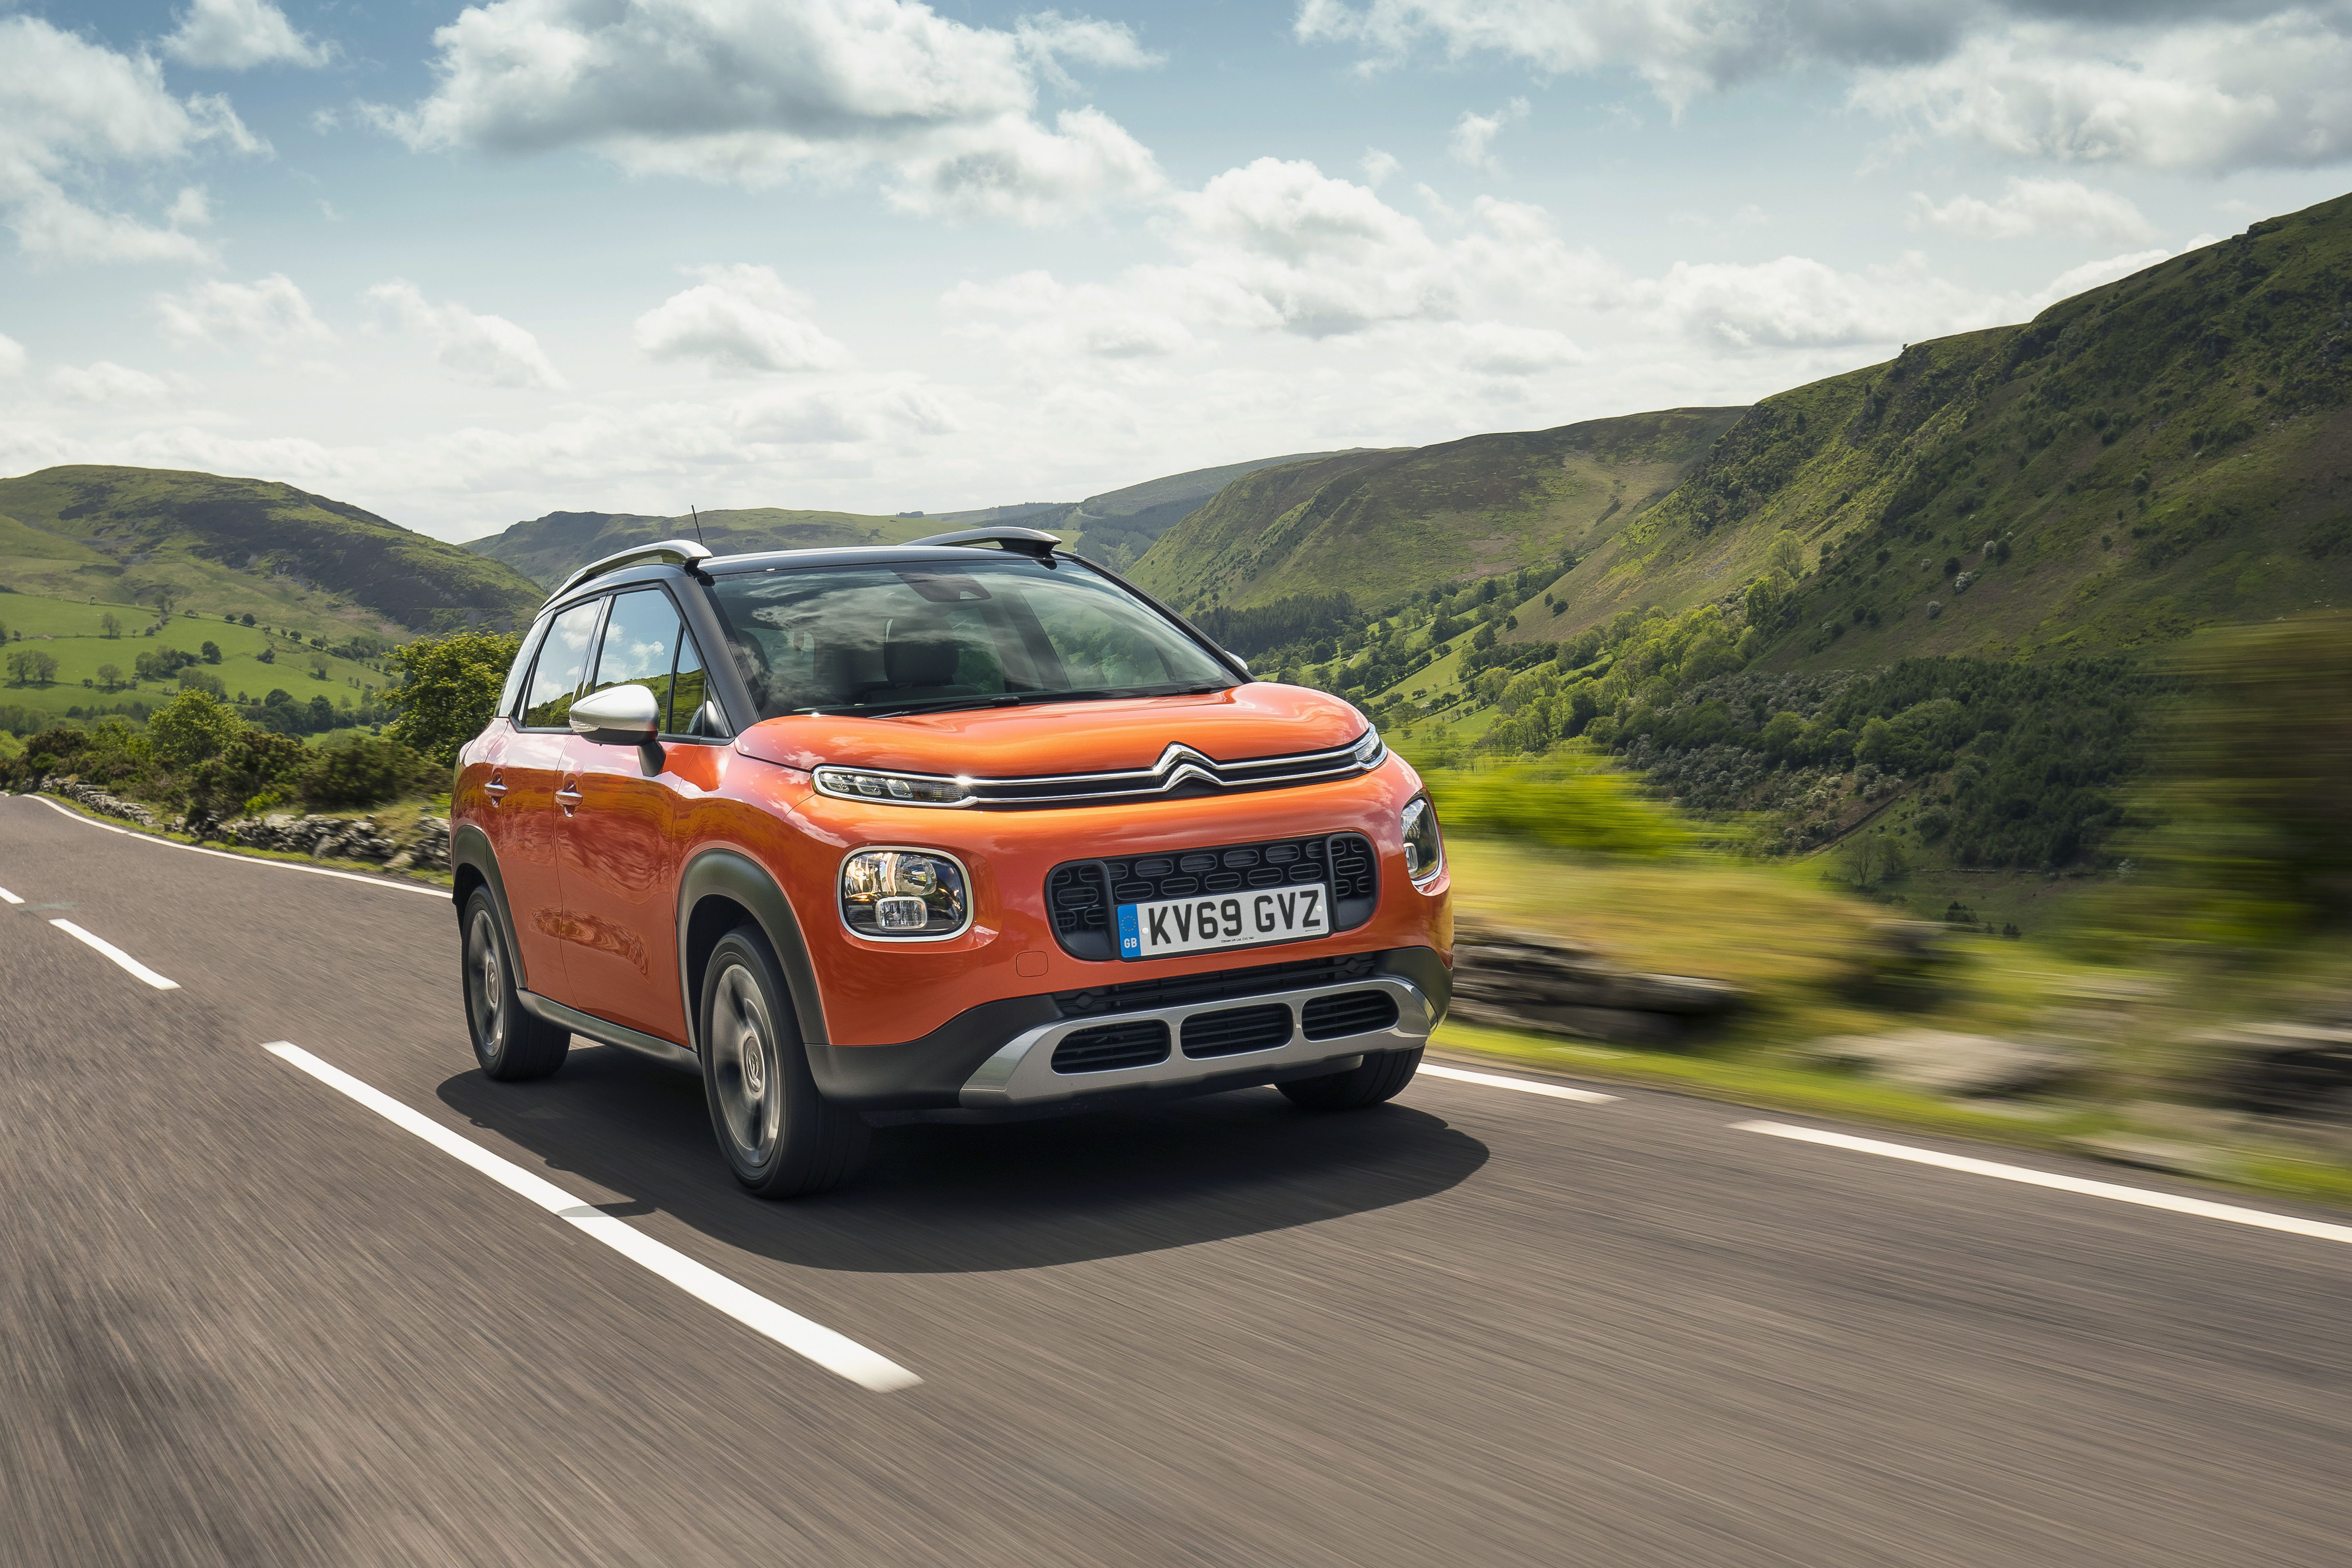 orange Citroen C3 Aircross driving on a road